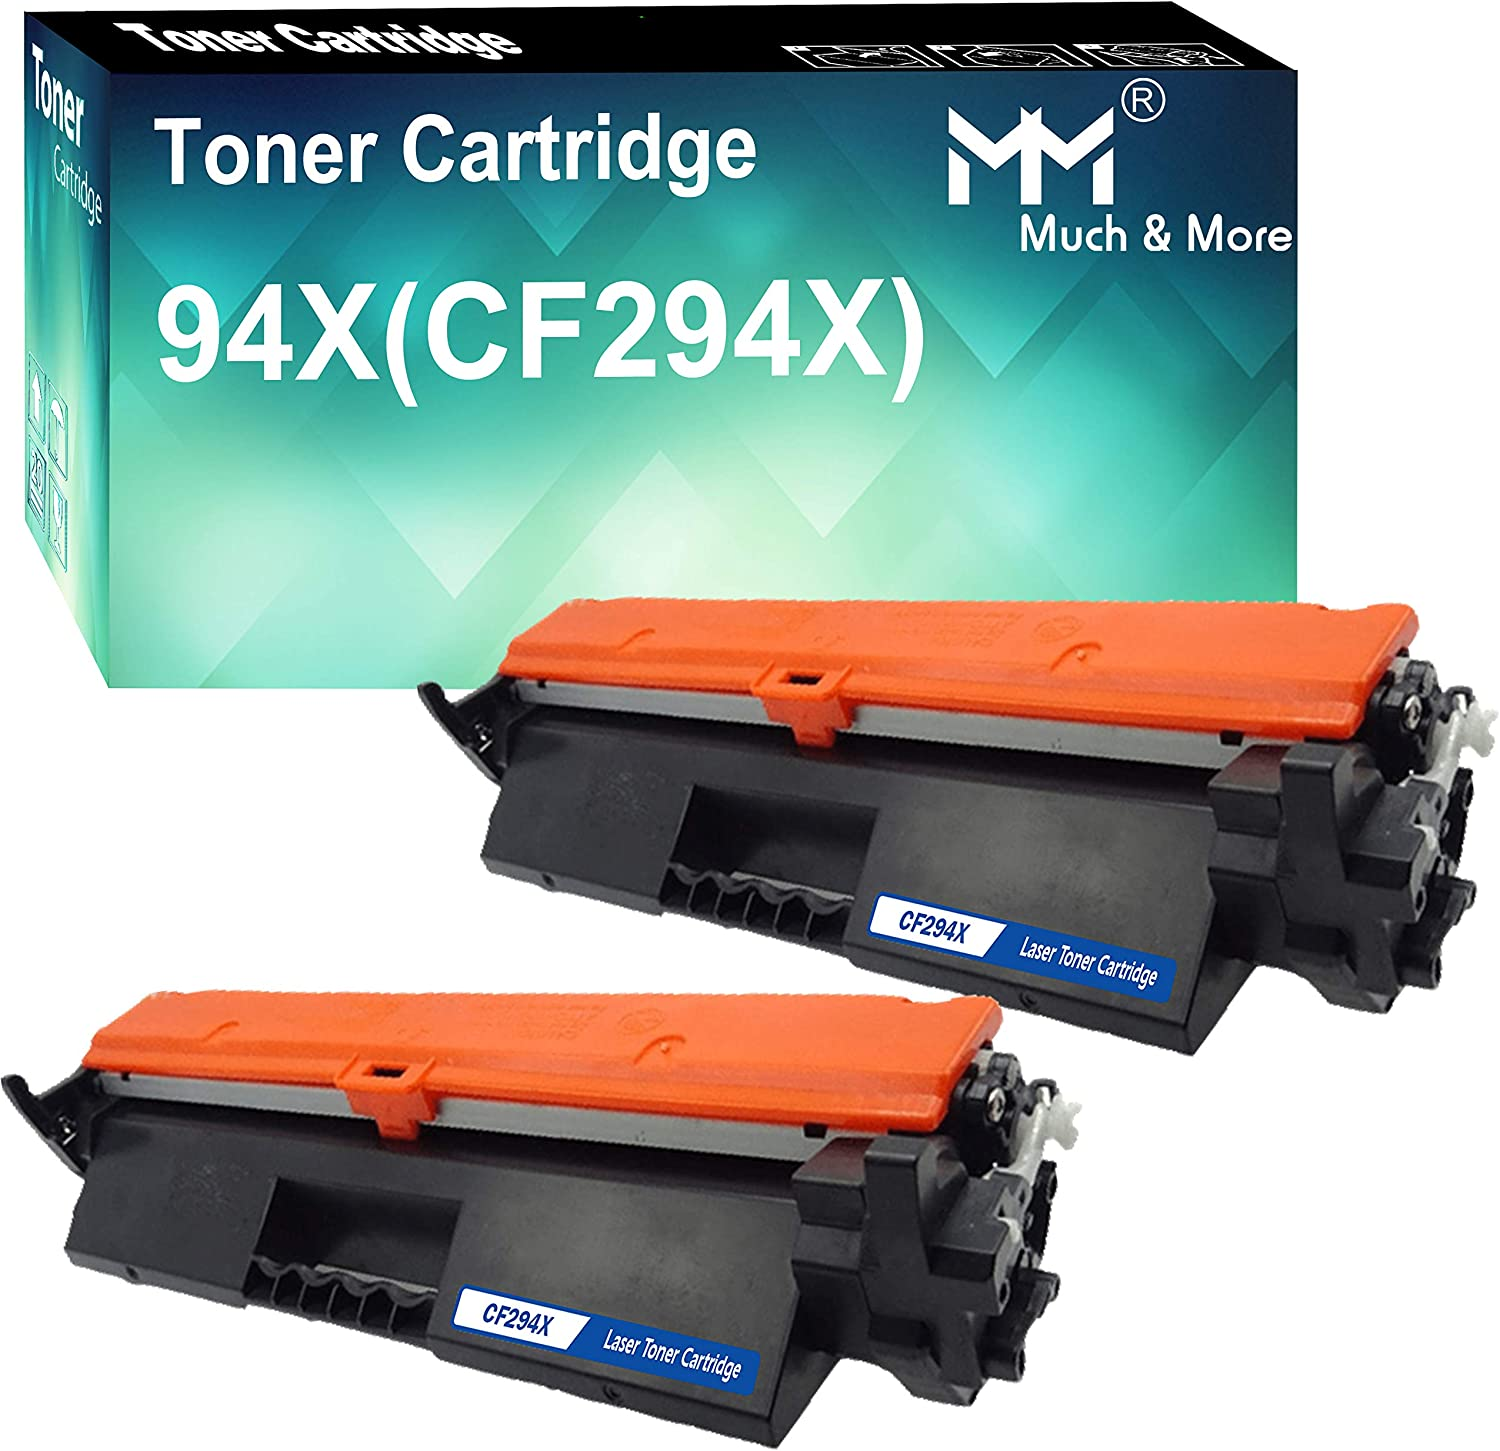 2-Pack (2X Black) Compatible CF294X 294X Toner Cartridge 94X High Yield Used for HP M118DW MFP M148DW 148FDW M149FDW M149FDW Printer, by MuchMore